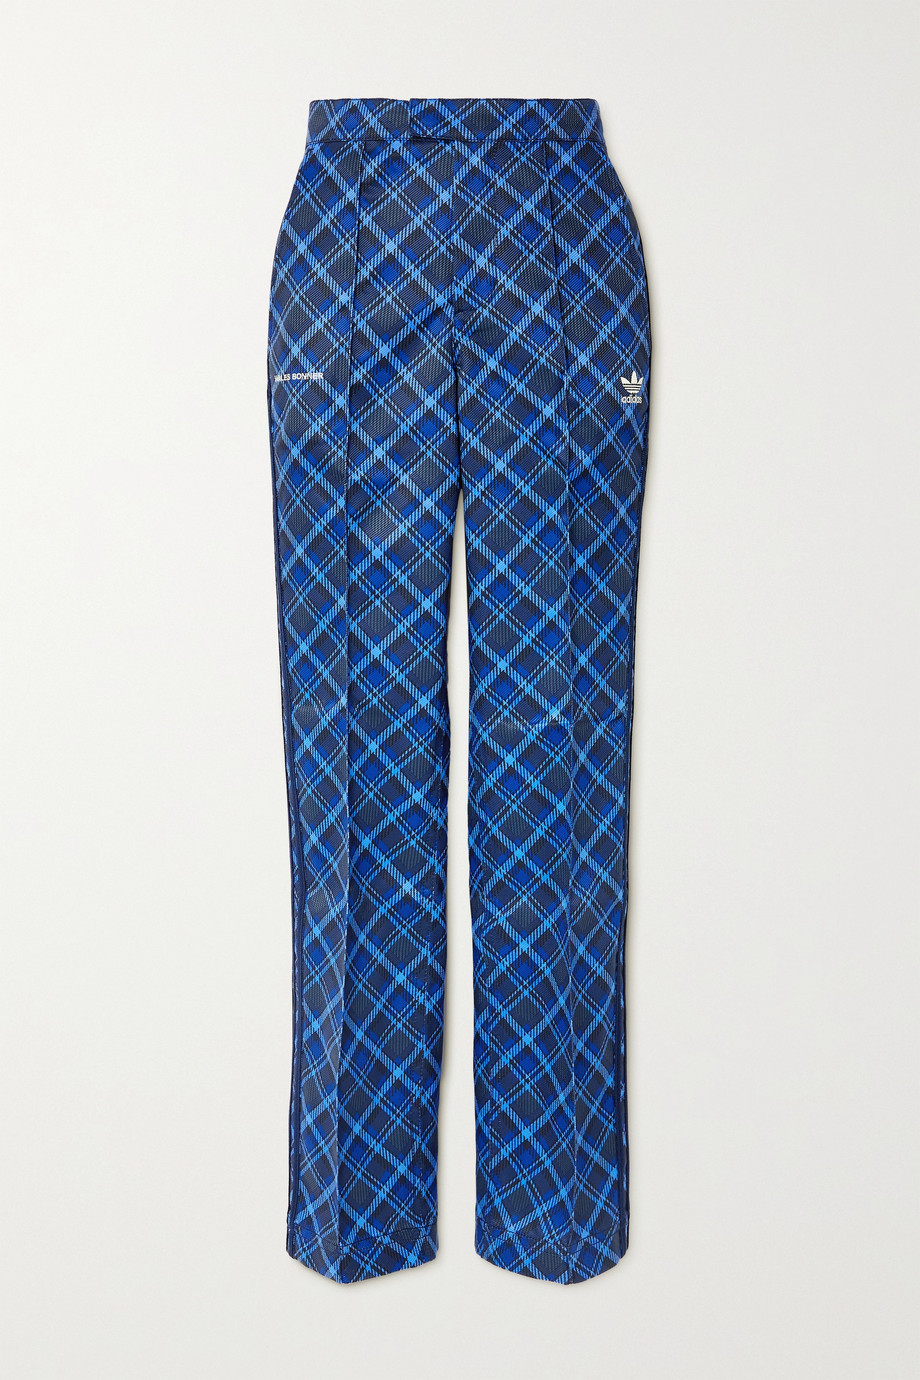 ADIDAS ORIGINALS + Wales Bonner striped checked twill track pants